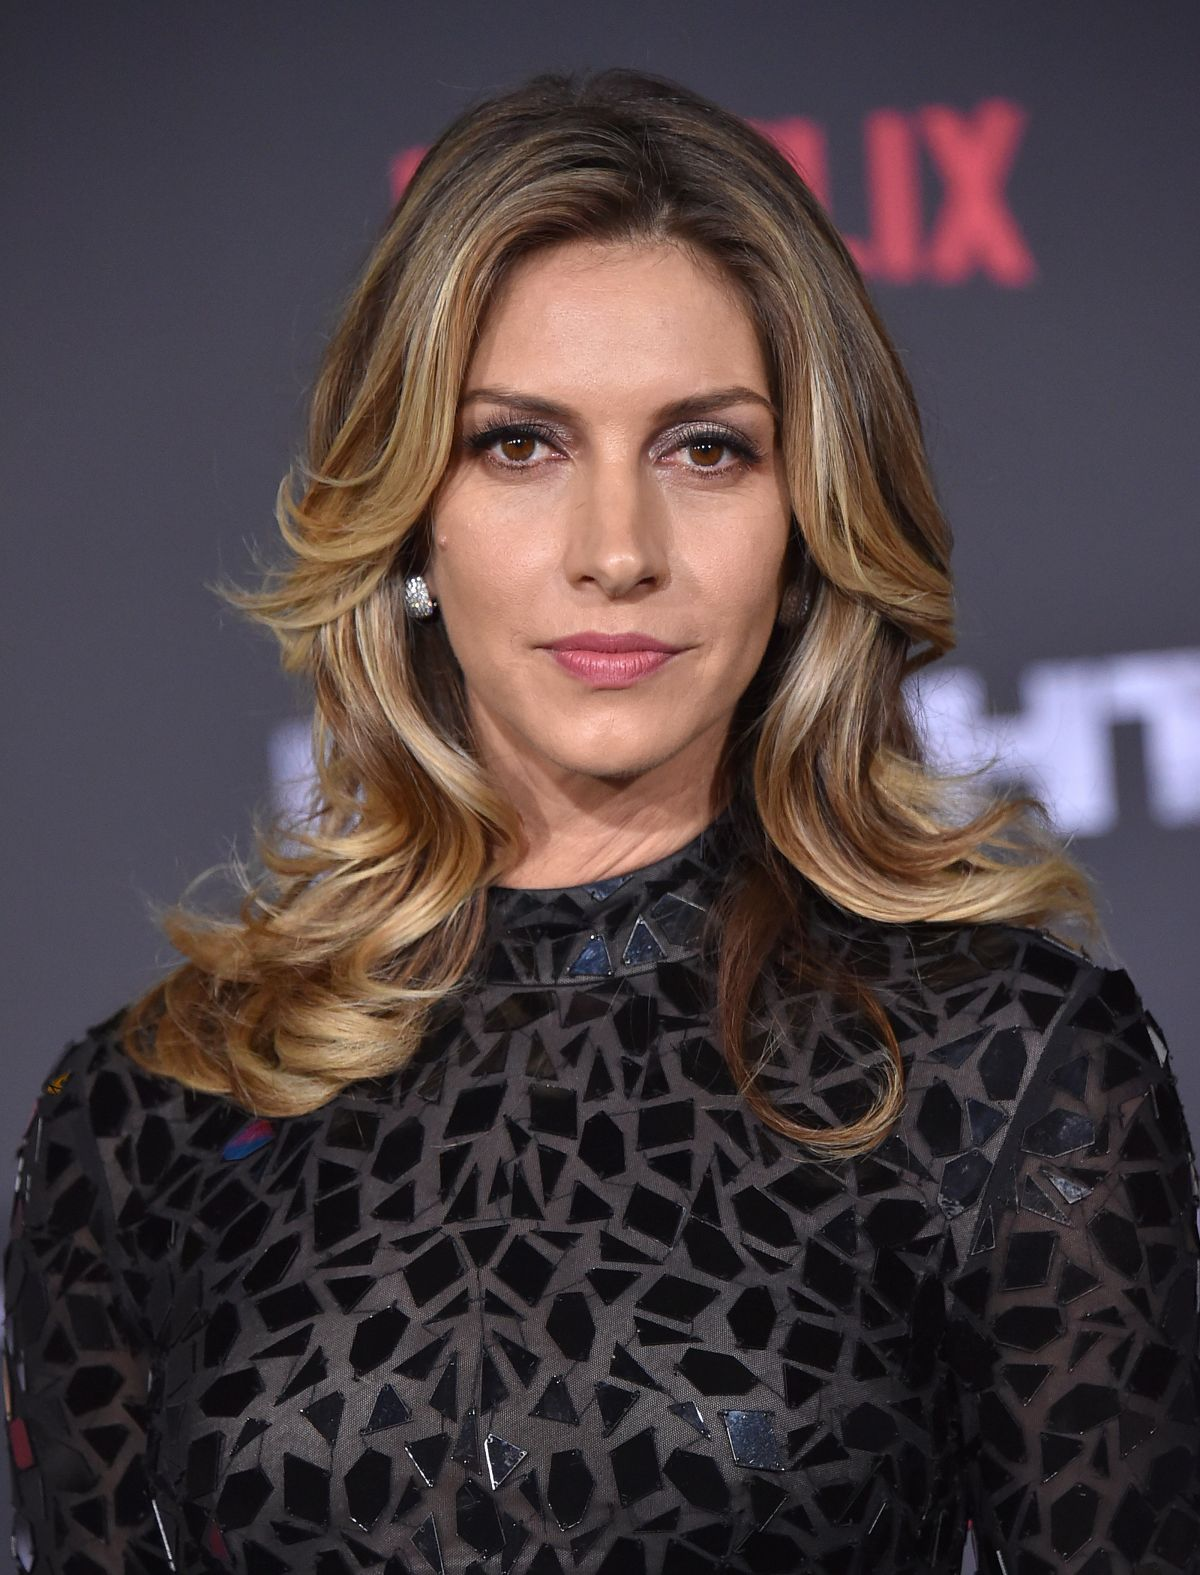 HD Wallpapers & Photos of Dawn Olivieri at Bright Premiere in Los Angeles